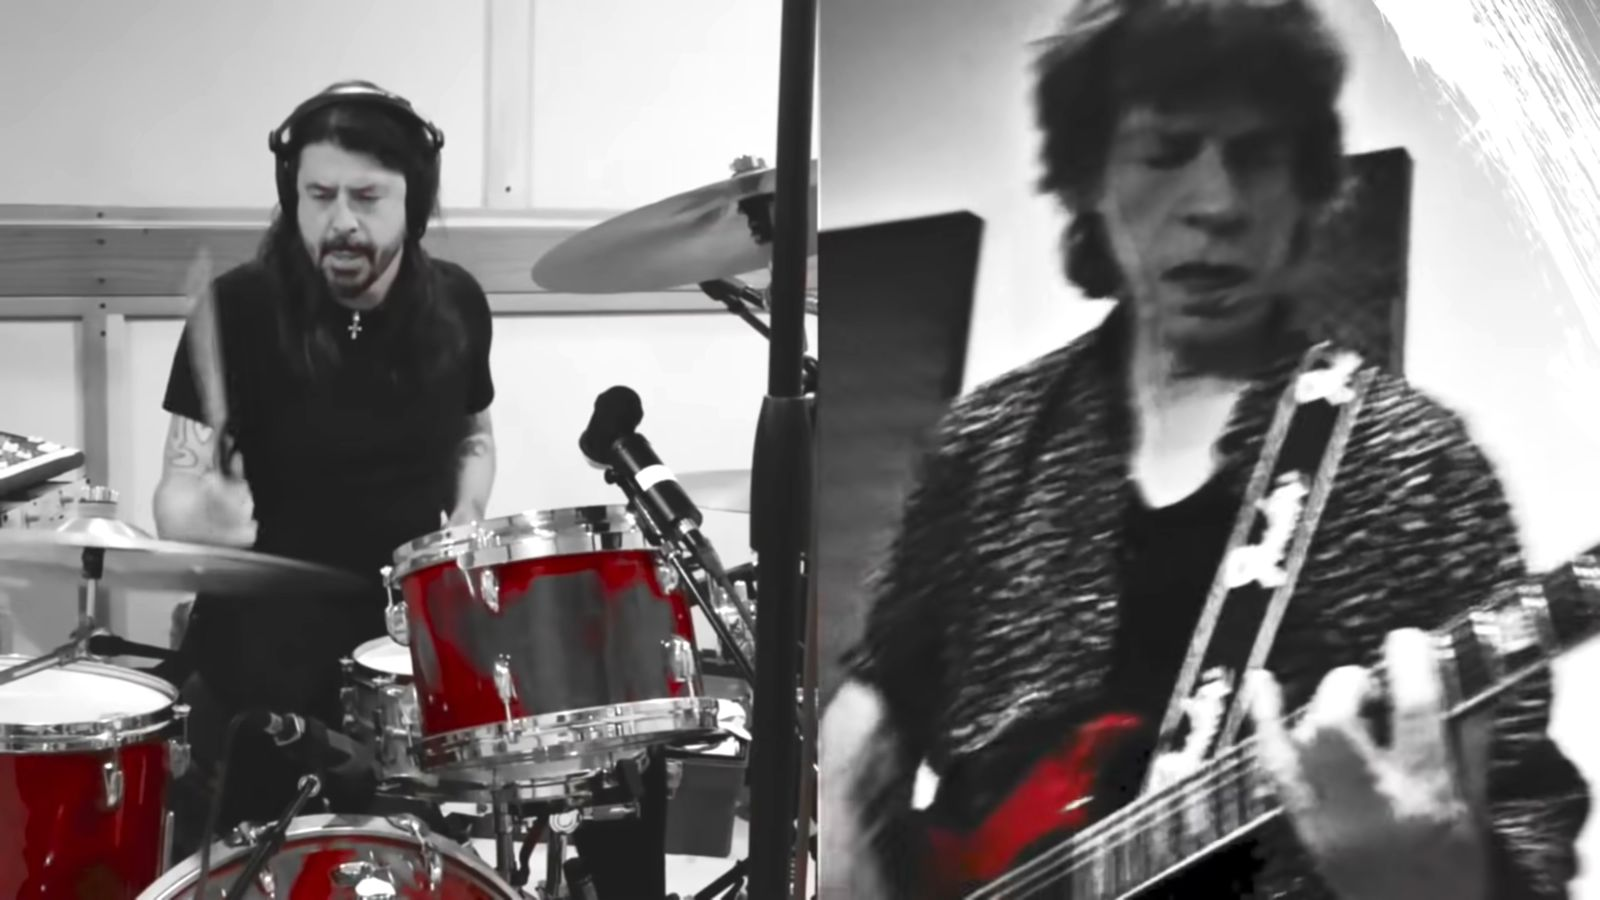 EAZY SLEAZY — Mick Jagger with Dave Grohl — Lyric video SCREENSHOT